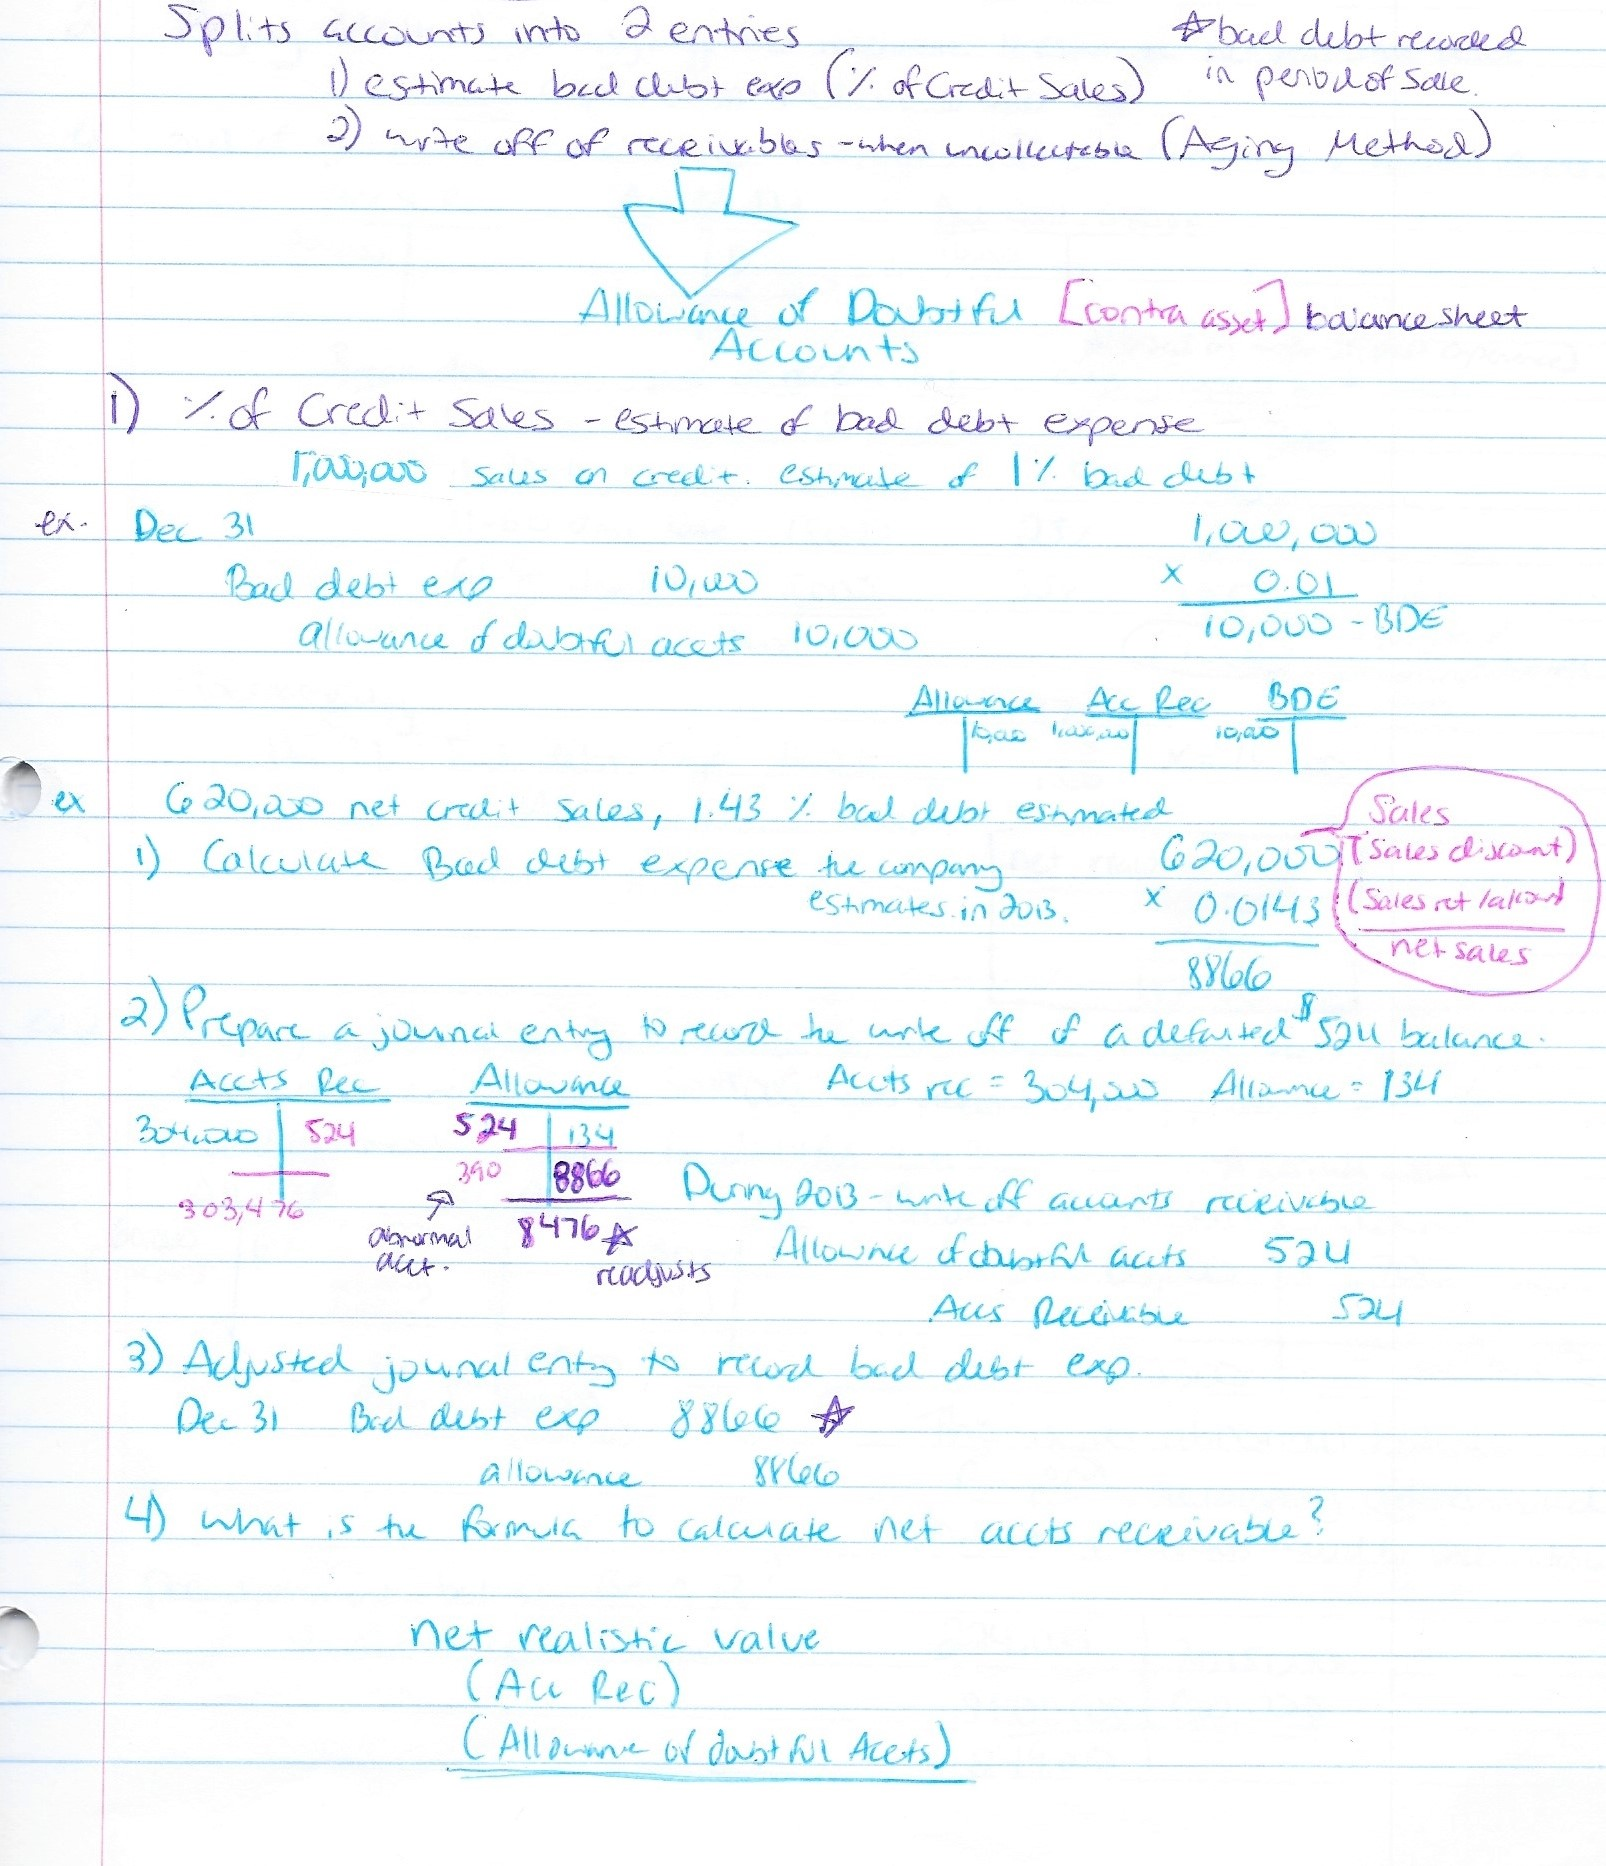 ACCT 2110 - Class Notes